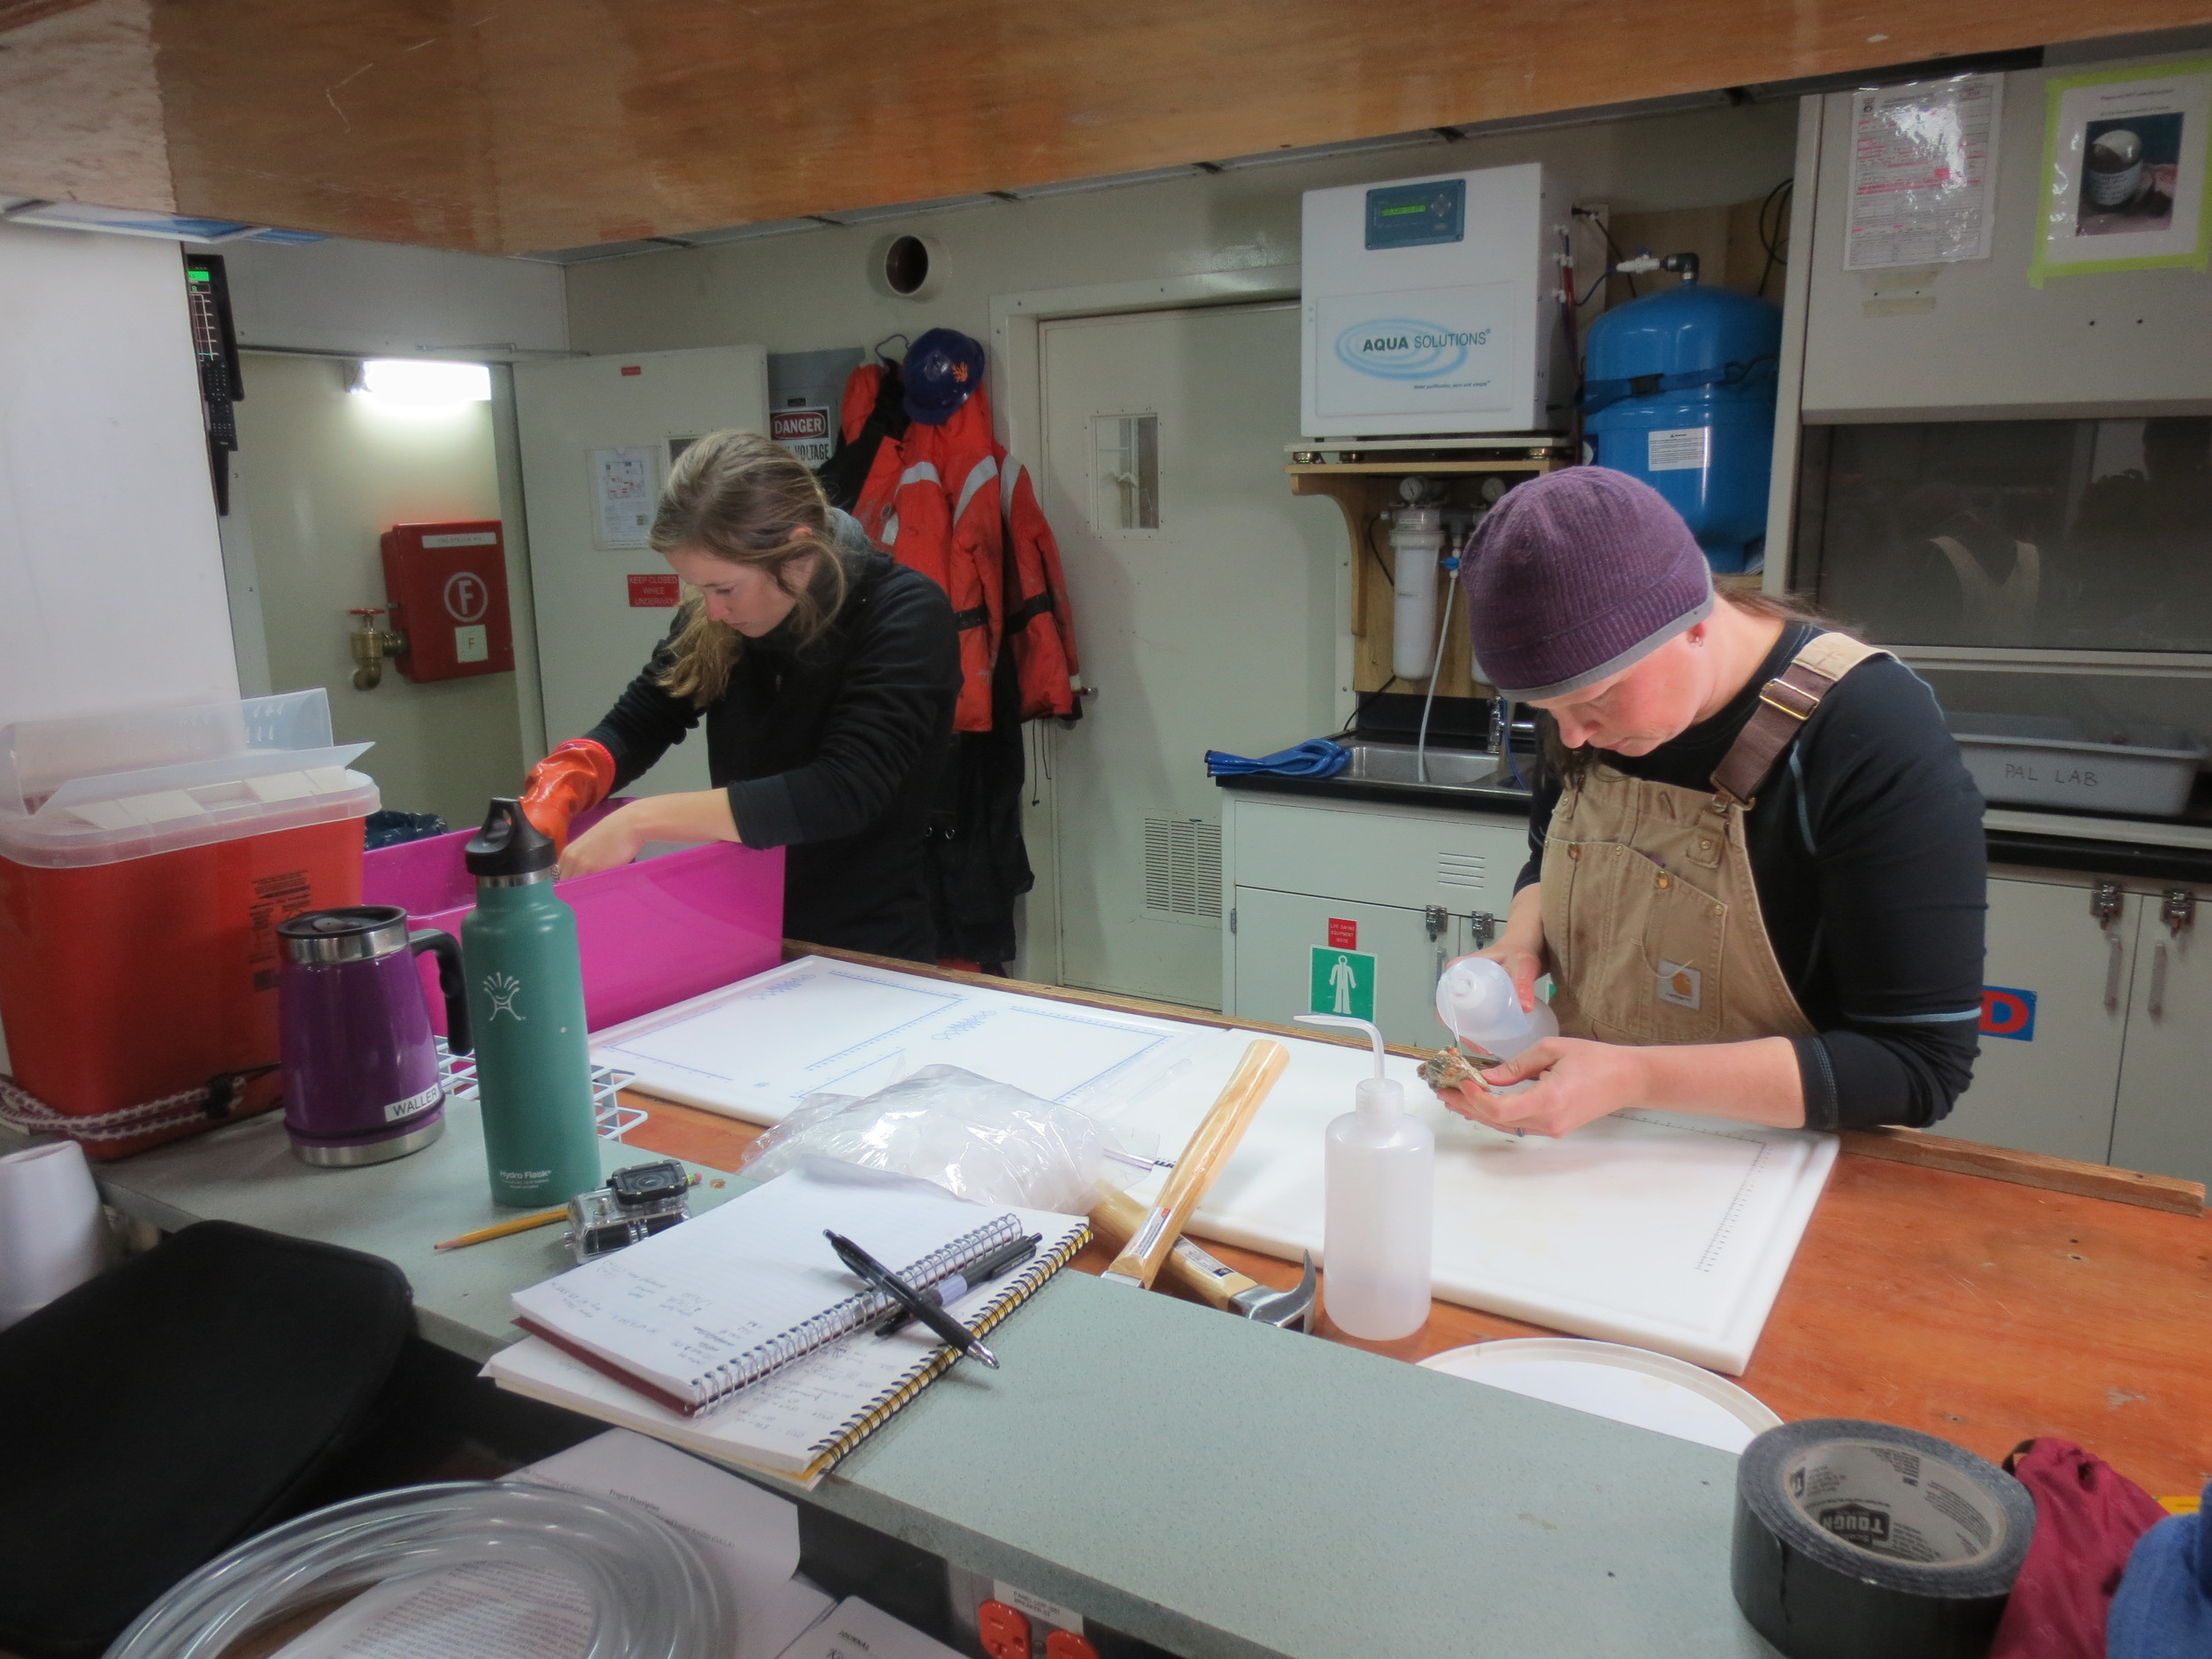 Working far into the night processing all the animal and water samples